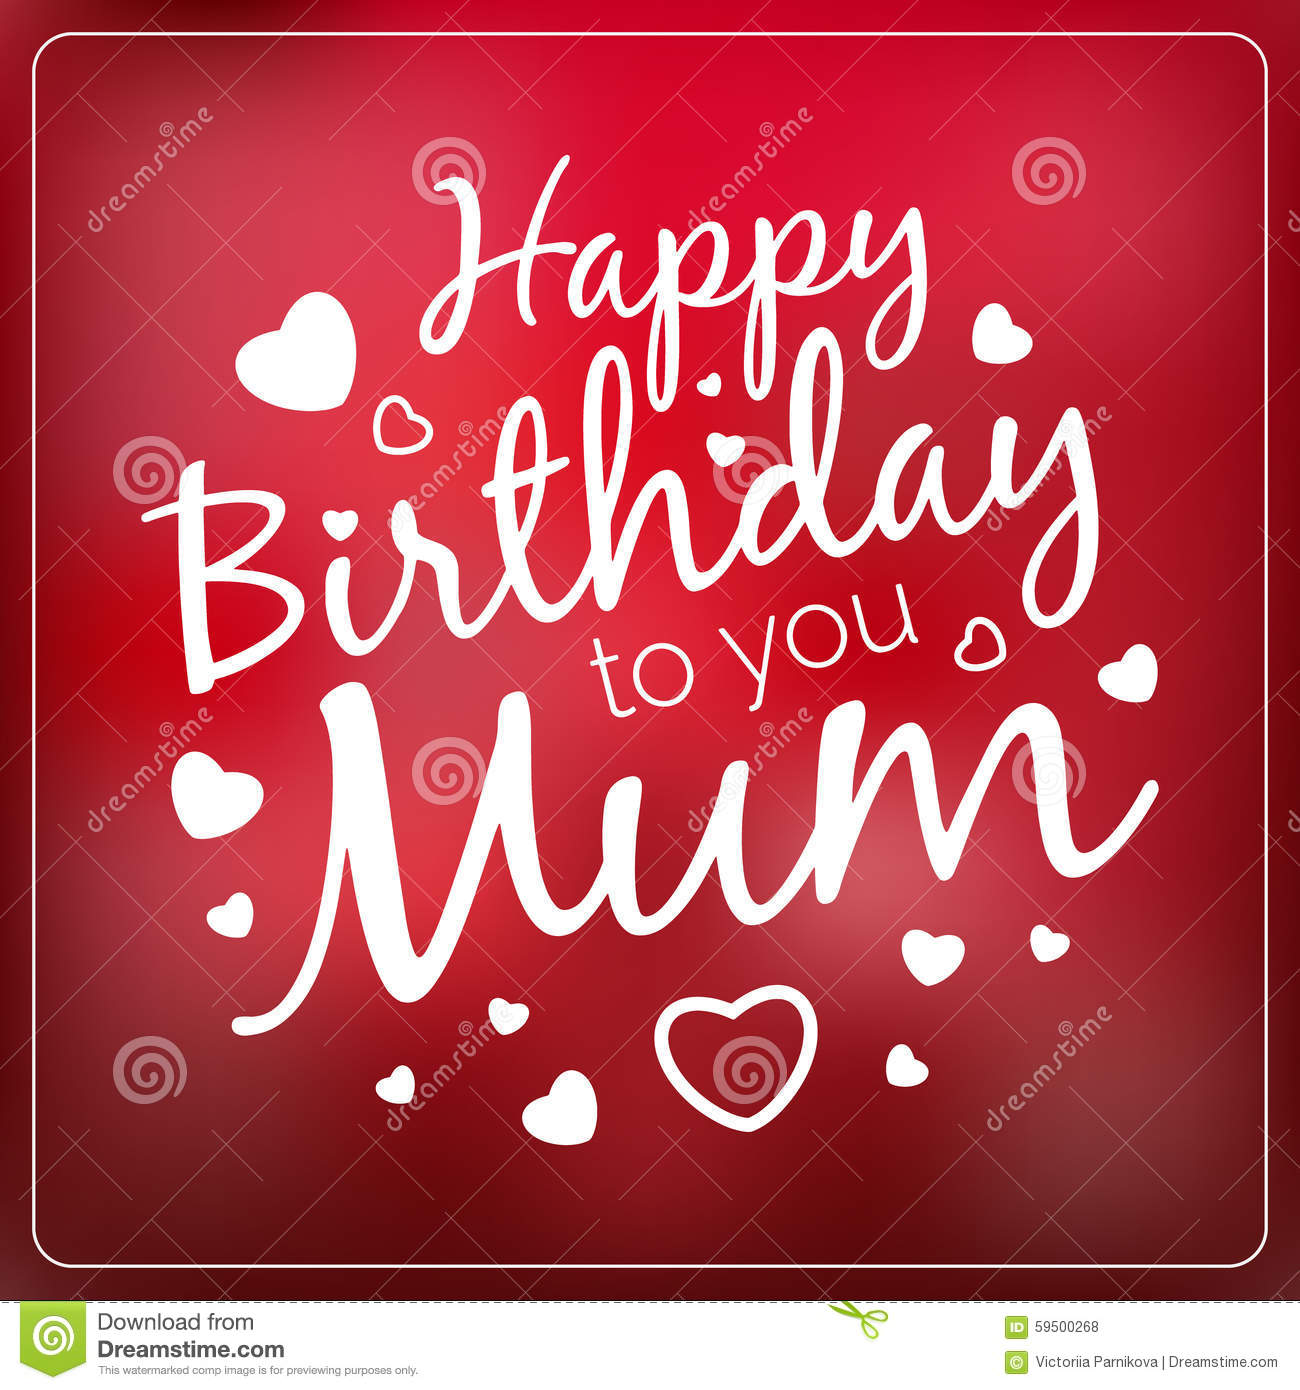 ... Birthday To You Mum Card Template. Stock Vector - Image: 59500268